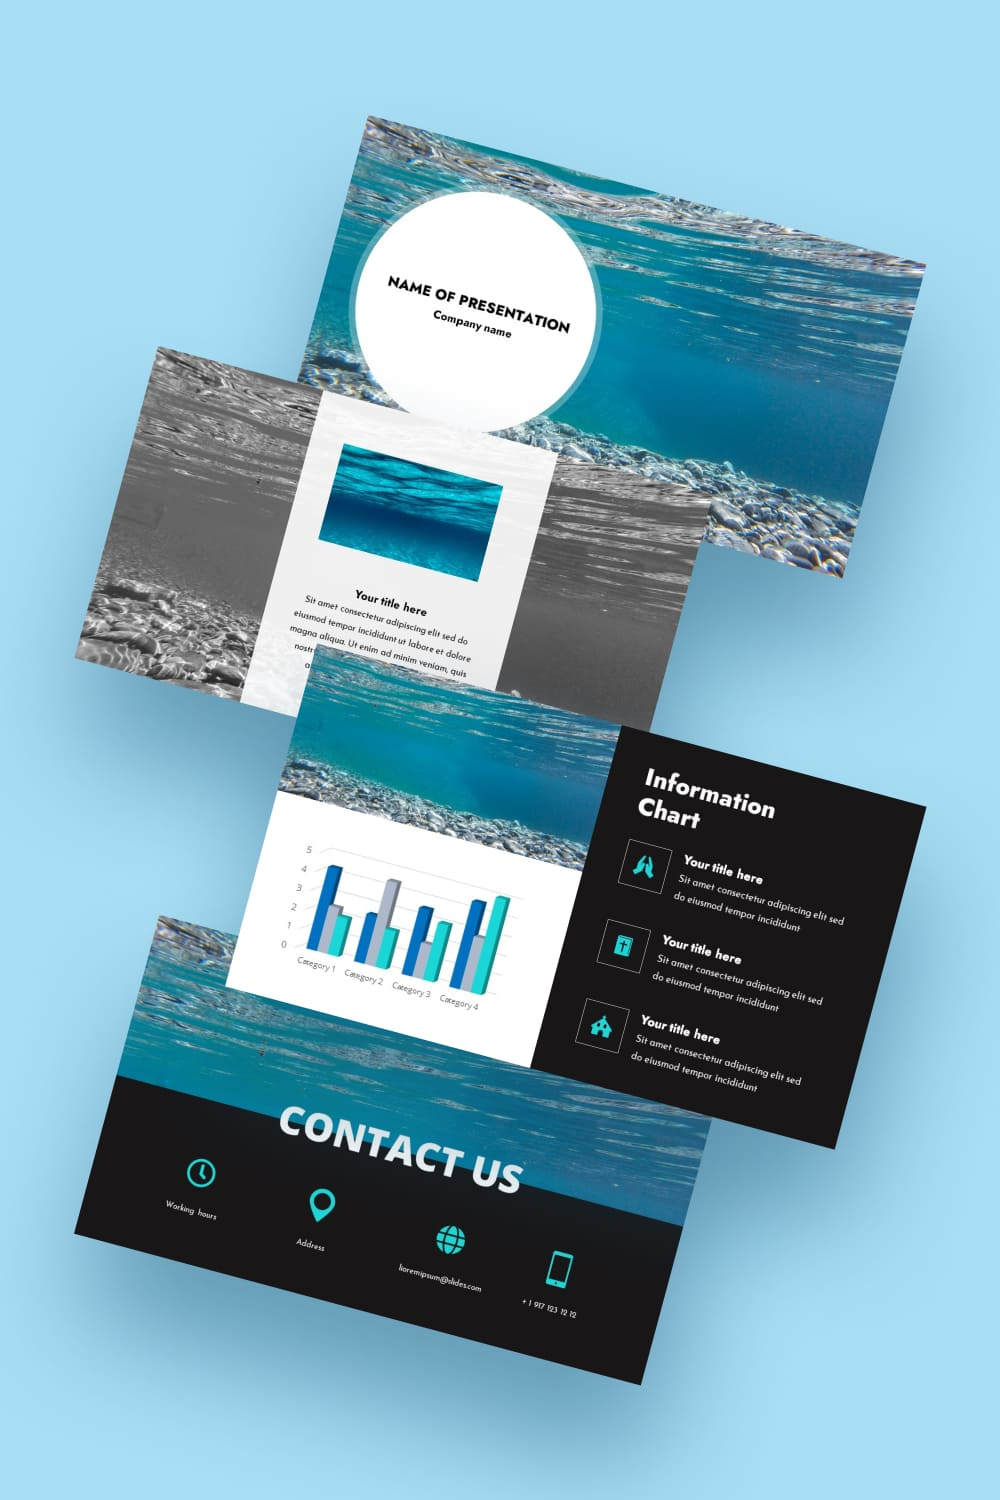 Free Worship Powerpoint Background Under Water. Blue grace. Freshness and calmness is felt from this template.